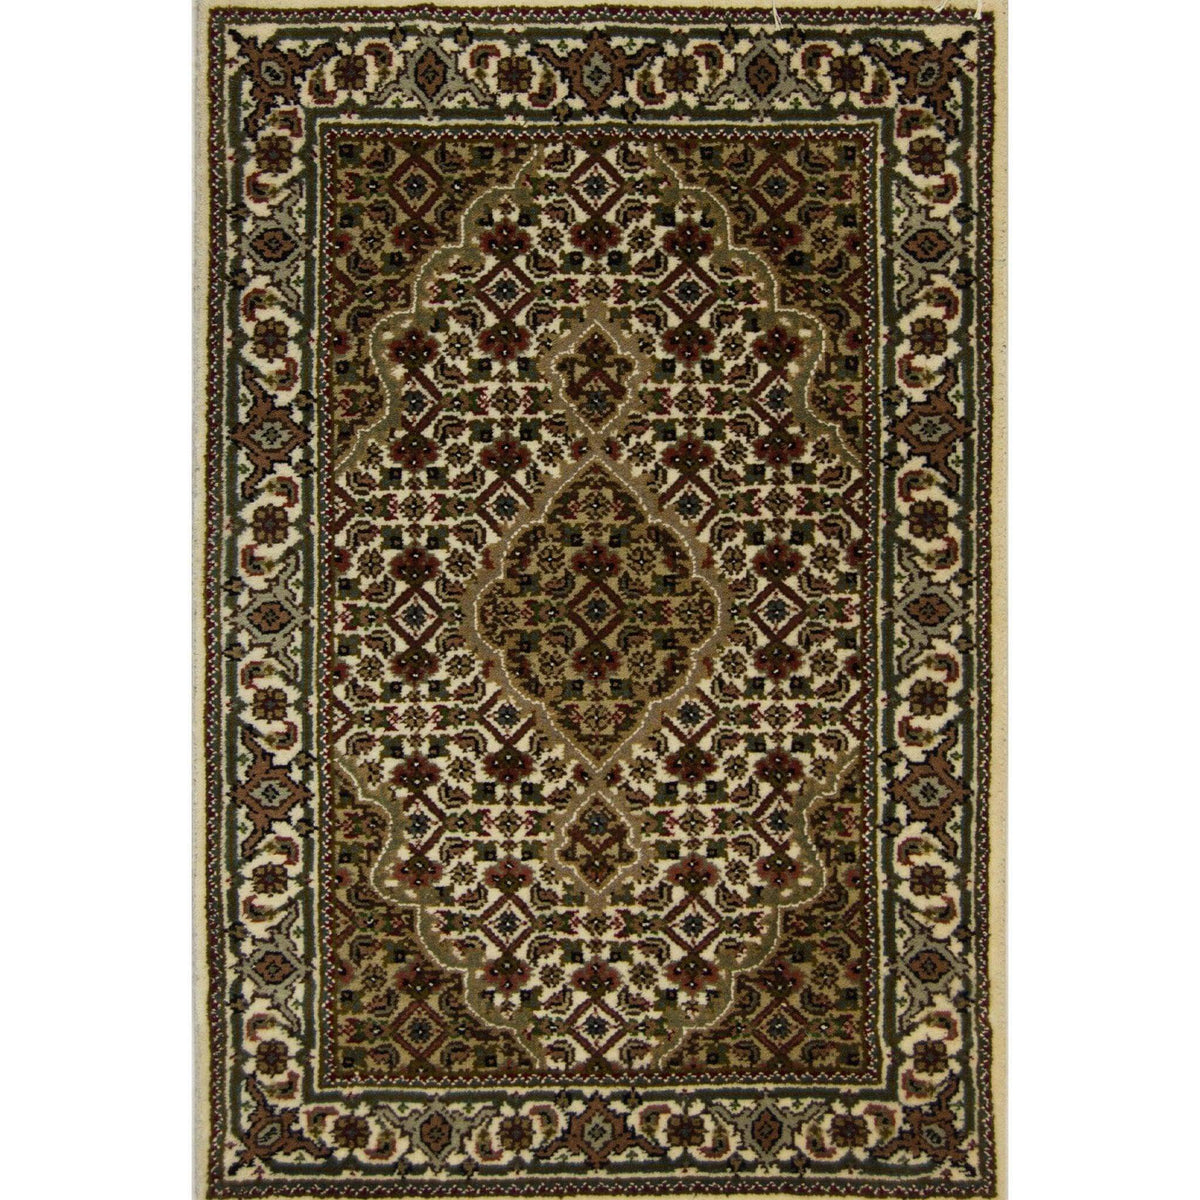 Small Hand-knotted Tabriz - Mahi Rug 62cm x 94cm Persian-Rug | House-of-Haghi | NewMarket | Auckland | NZ | Handmade Persian Rugs | Hand Knotted Persian Rugs